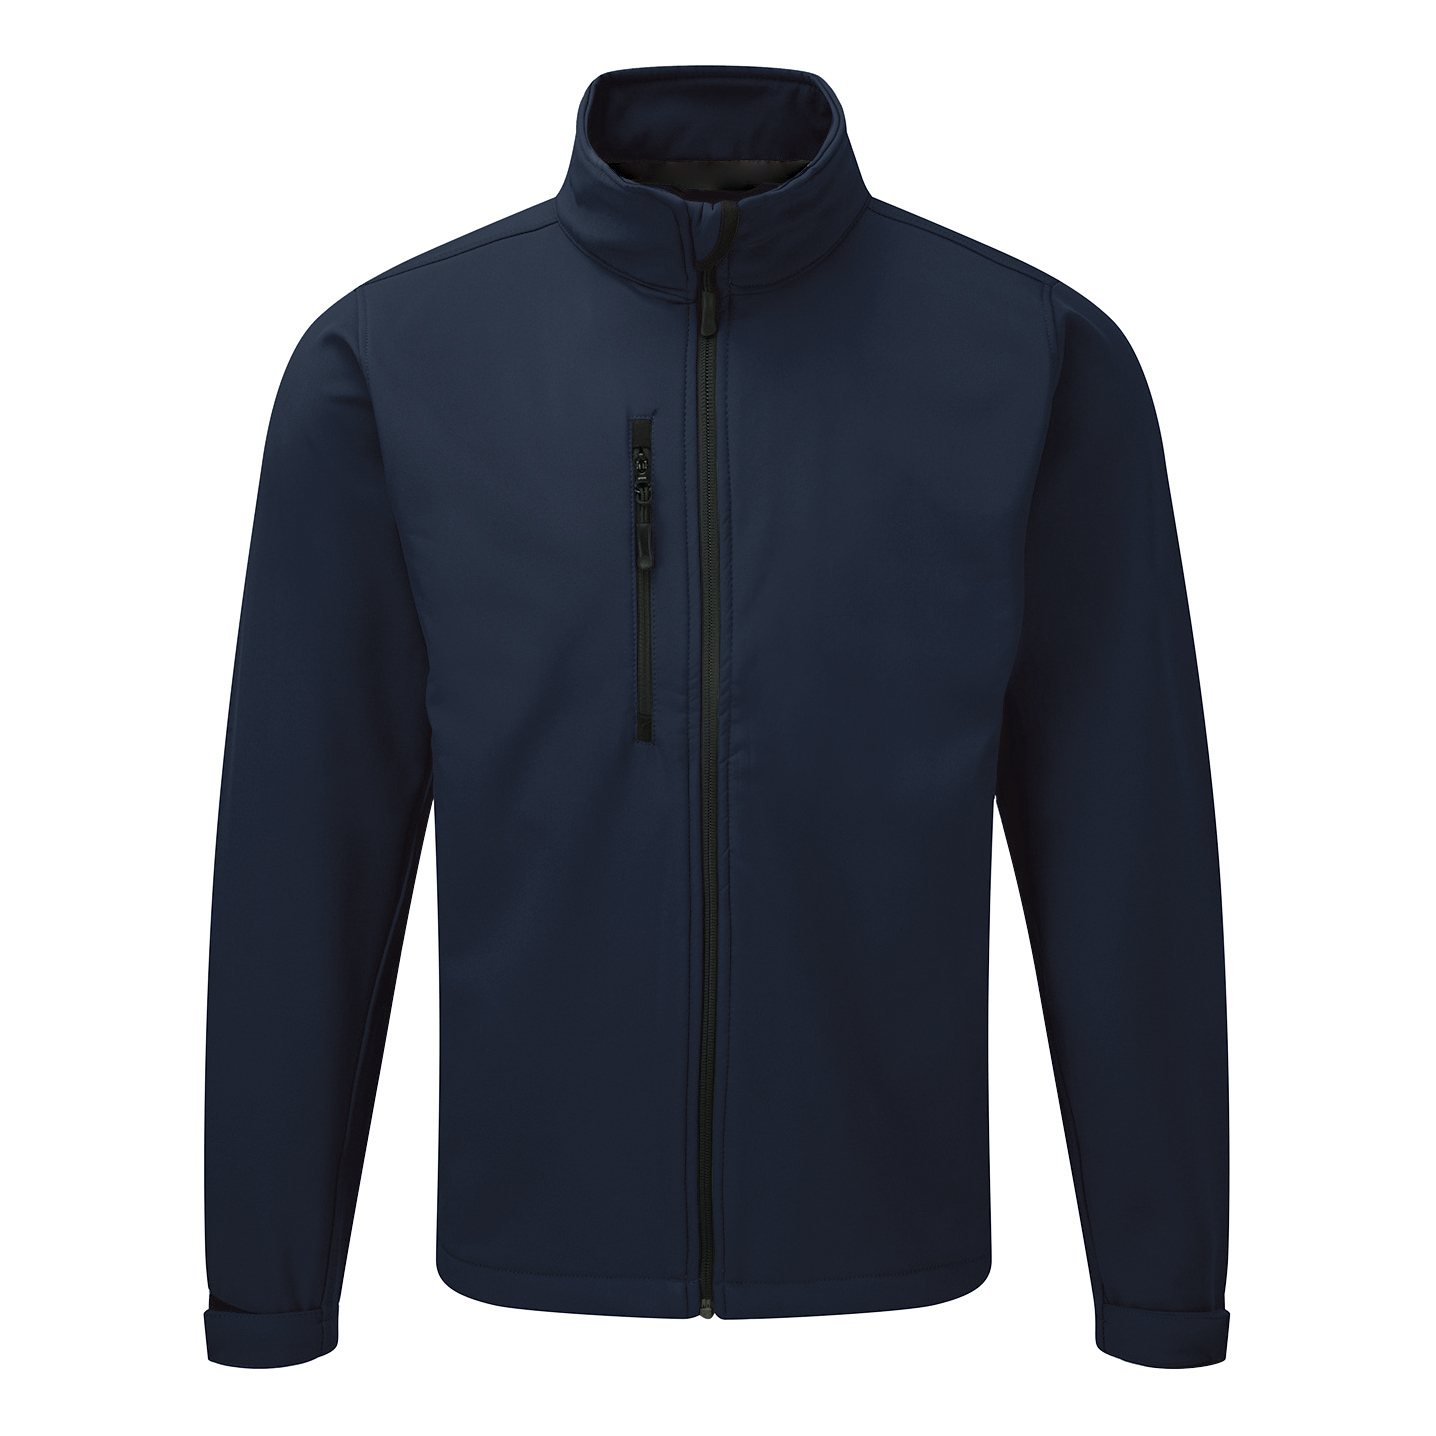 Jacket Soft Shell Water Resistant Breathable 320gsm Large Navy Blue